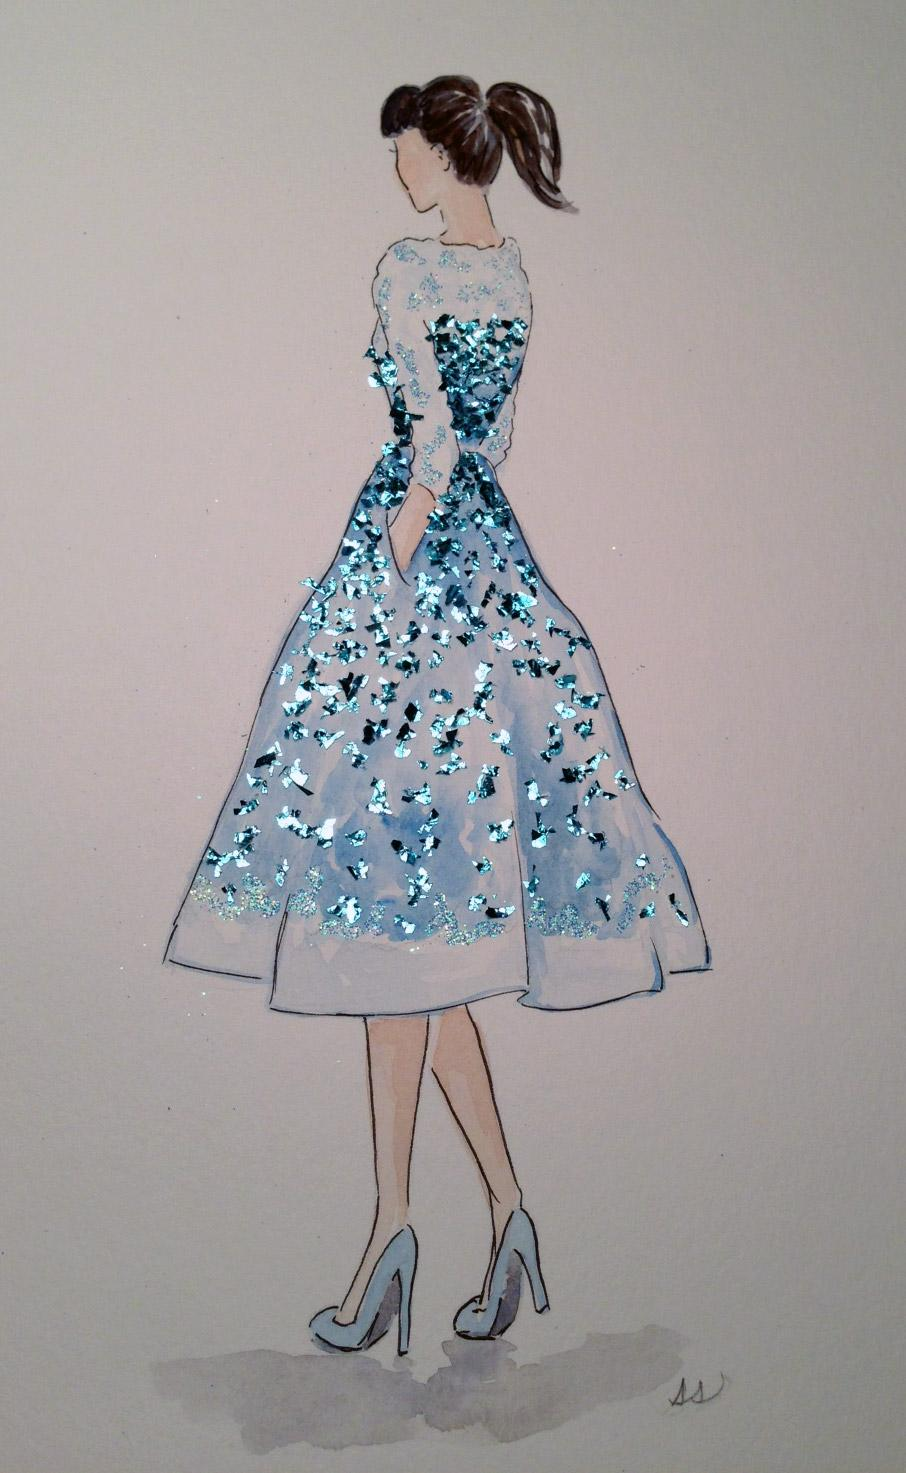 SS14 Inspiration - image 4 - student project